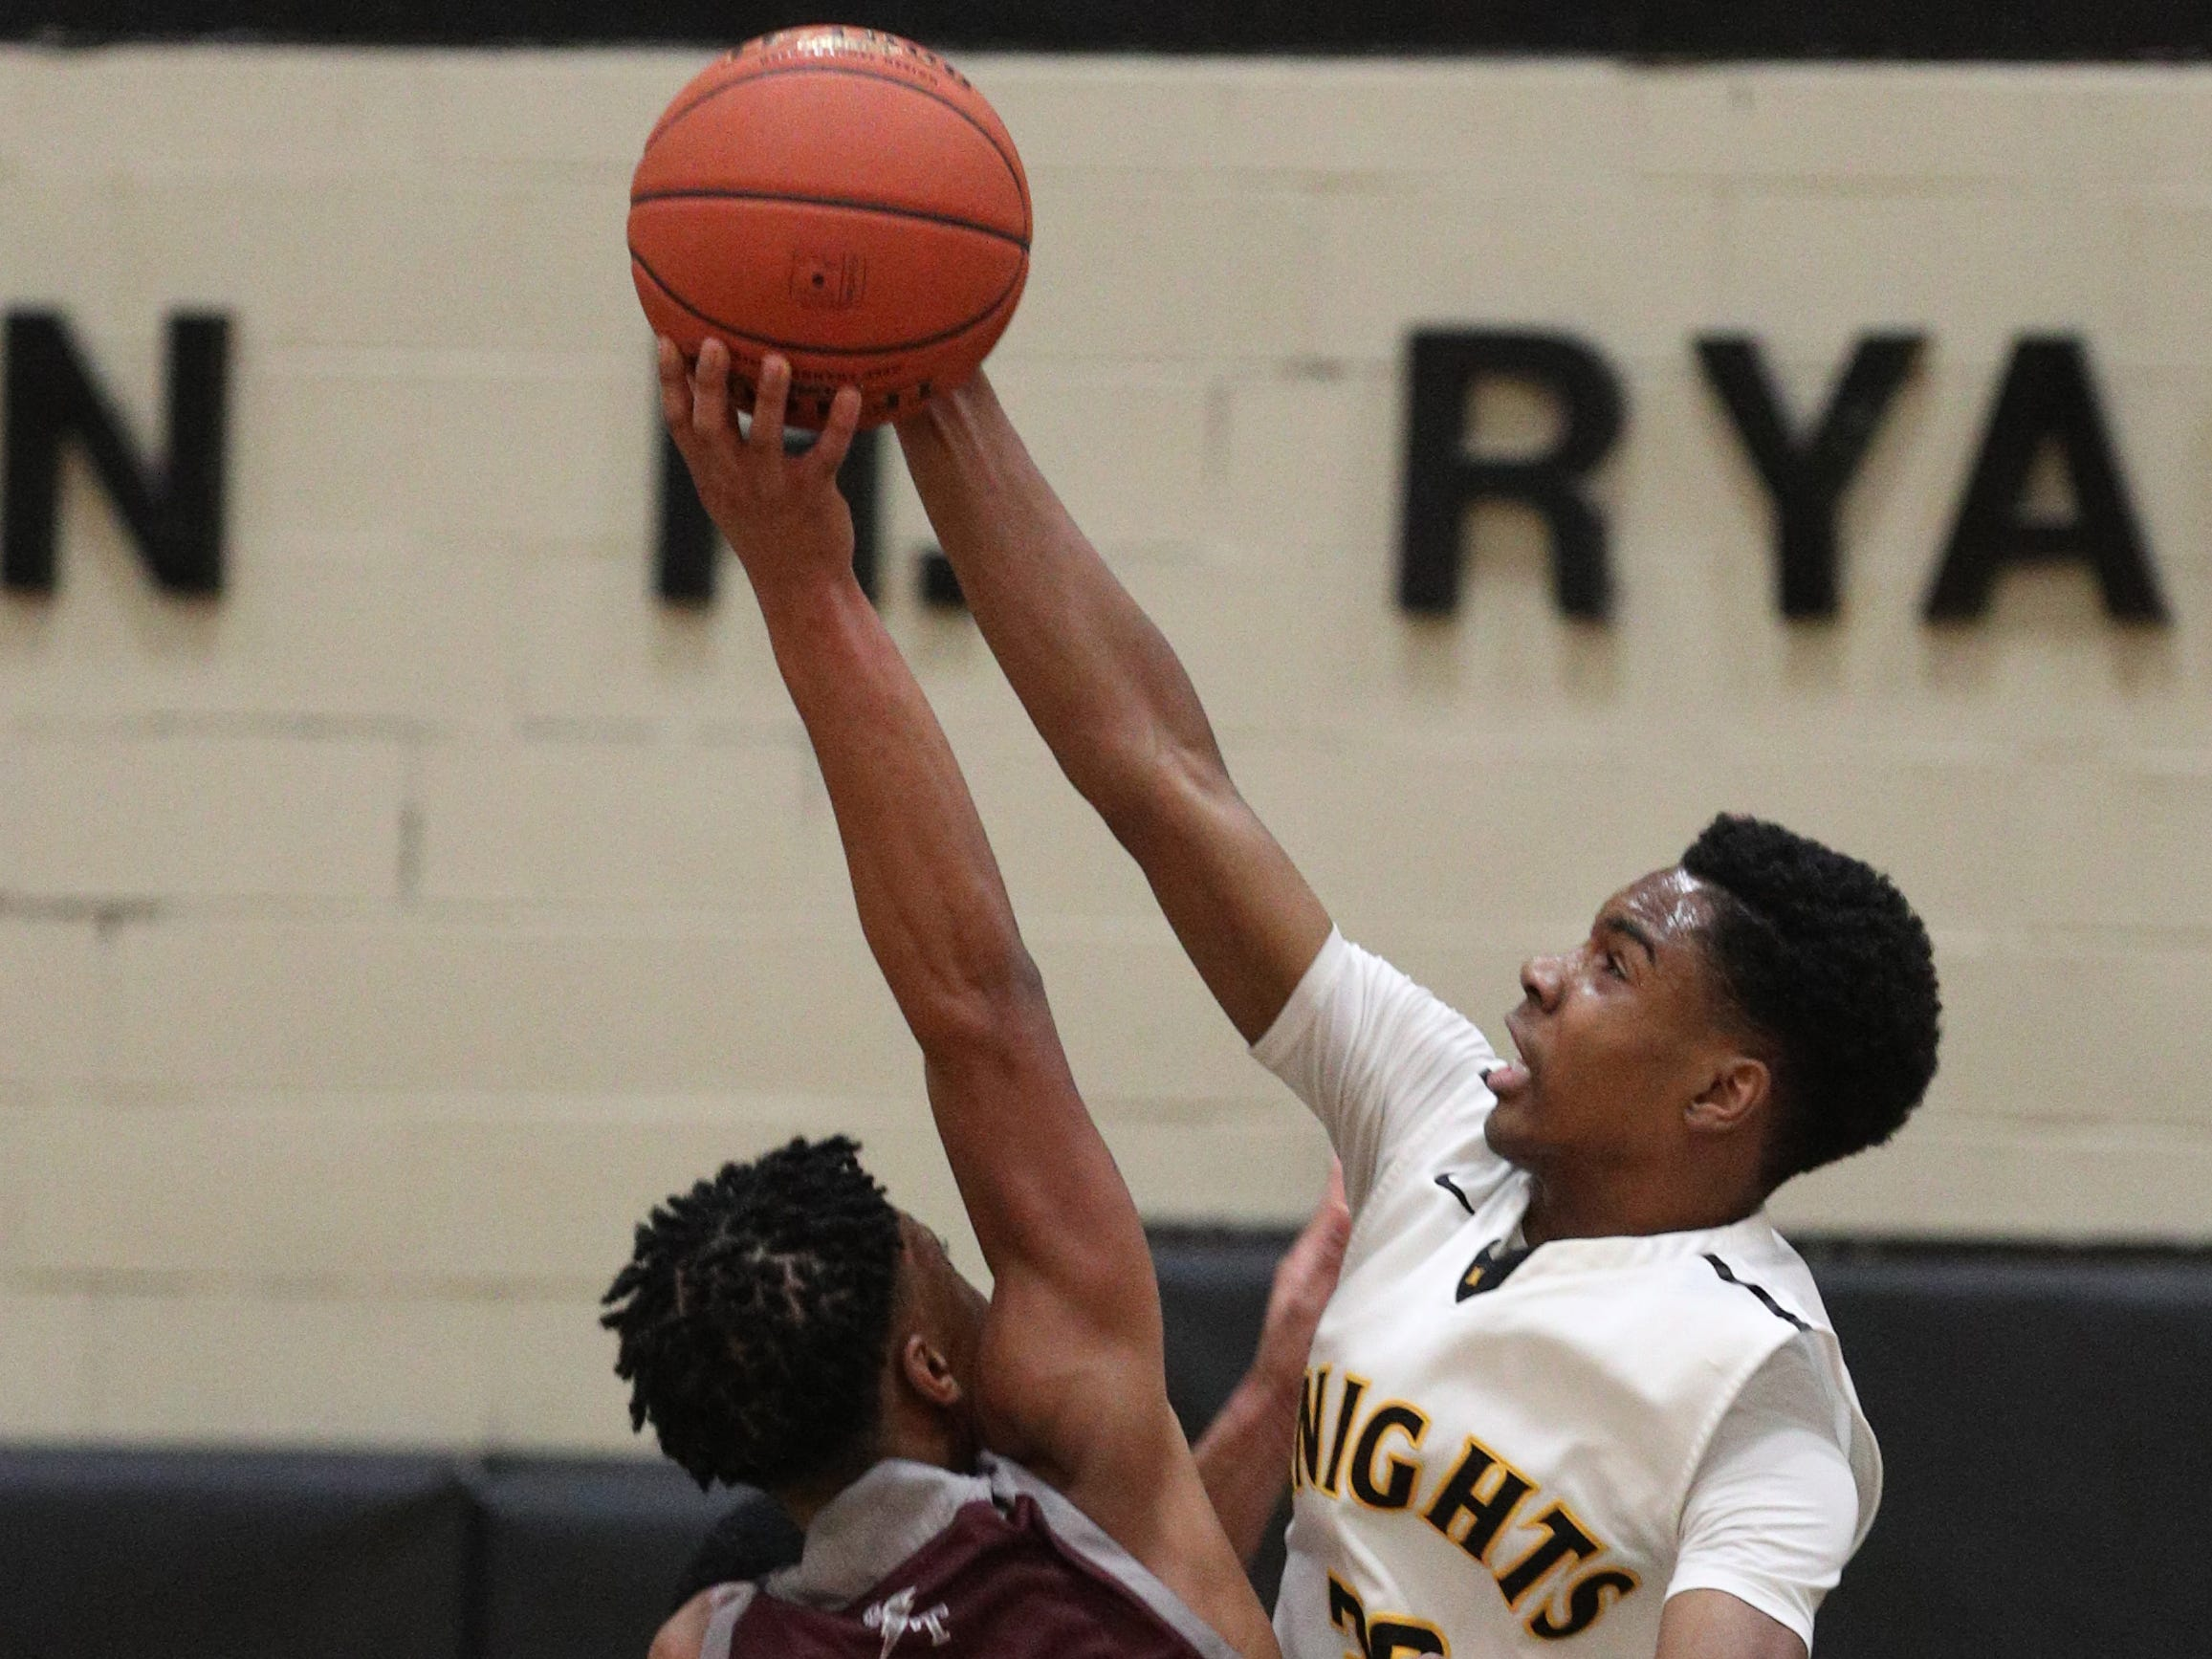 McQuaid's Kobe Long (30) gets the block on a shot by Edison's Alton Knight.